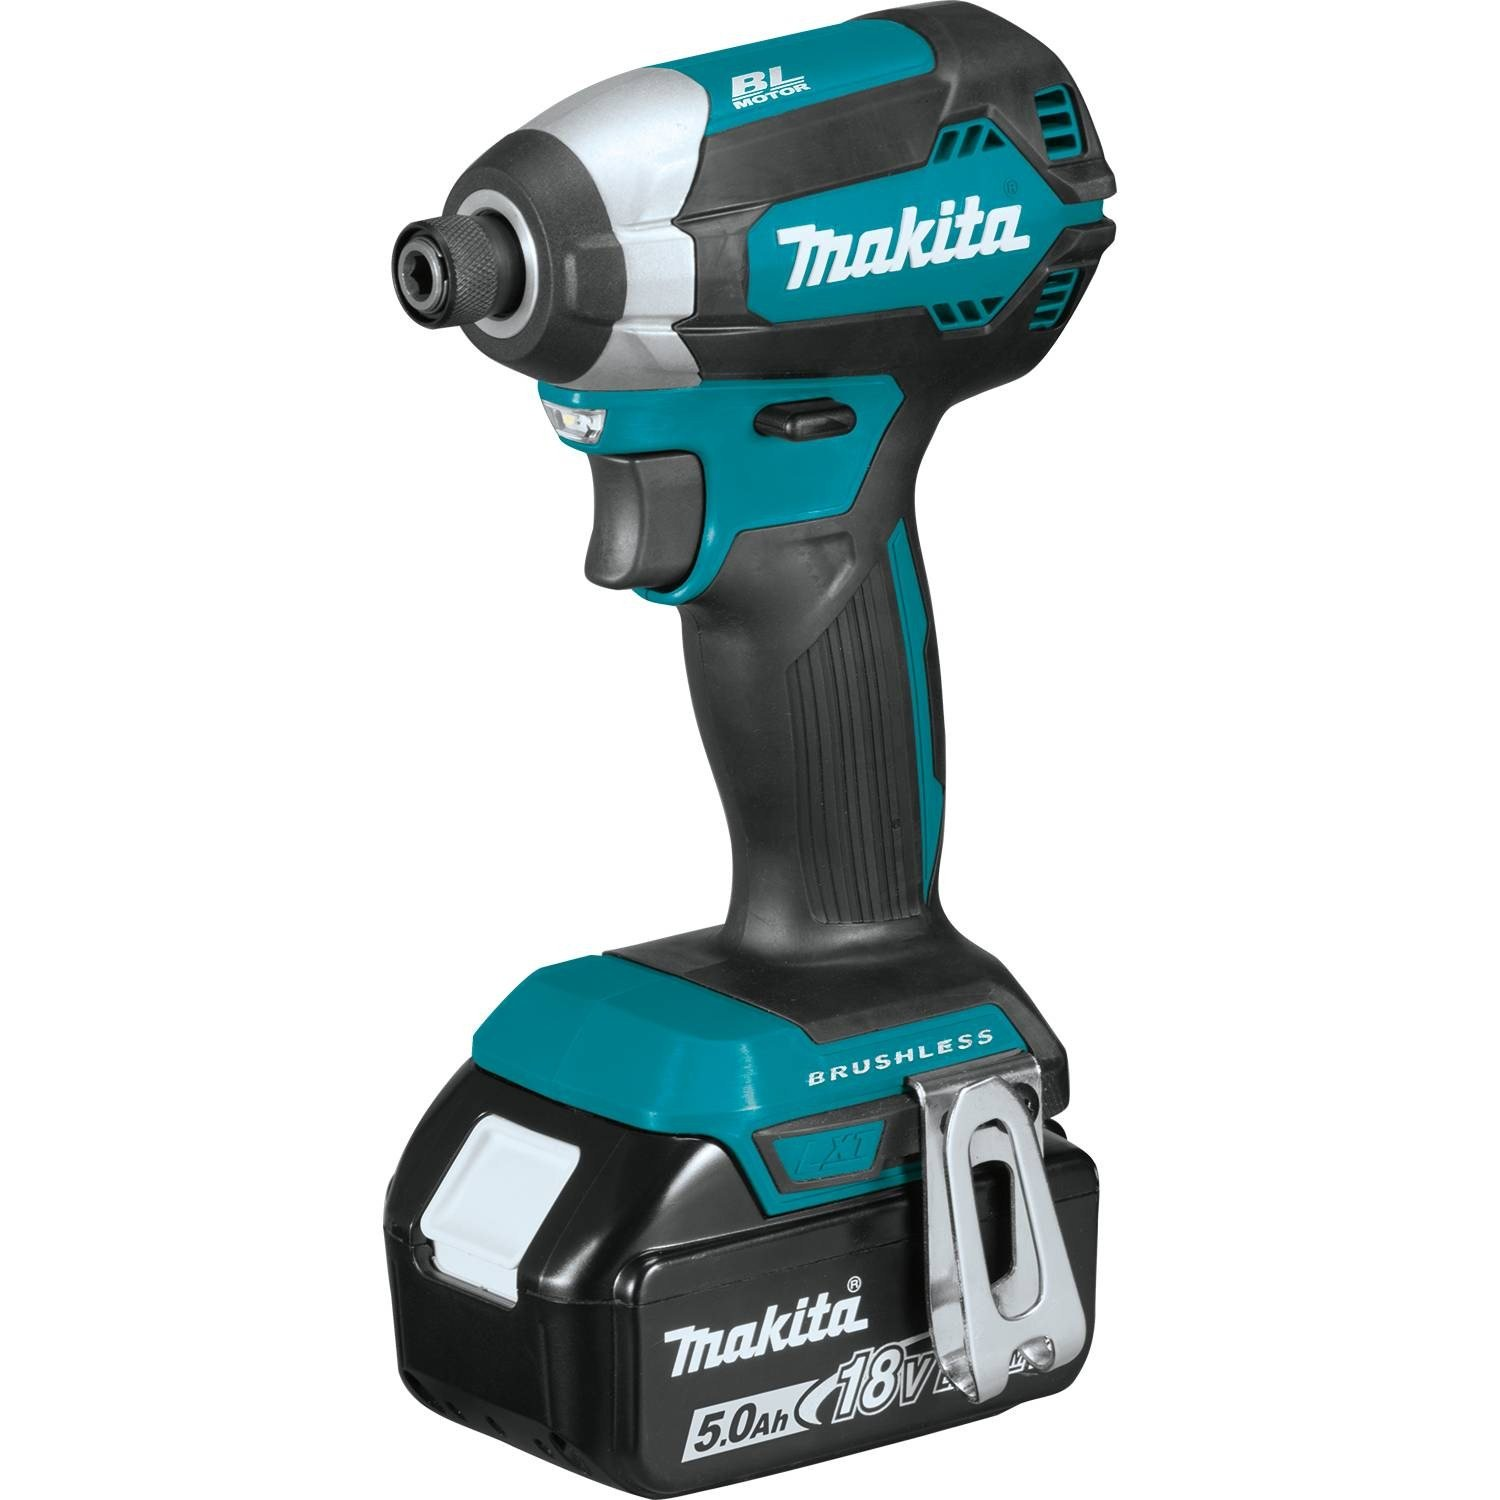 Makita Maktia XDT13T 18V LXT Lithium-Ion Brushless Cordless Impact Driver Kit 5.0Ah